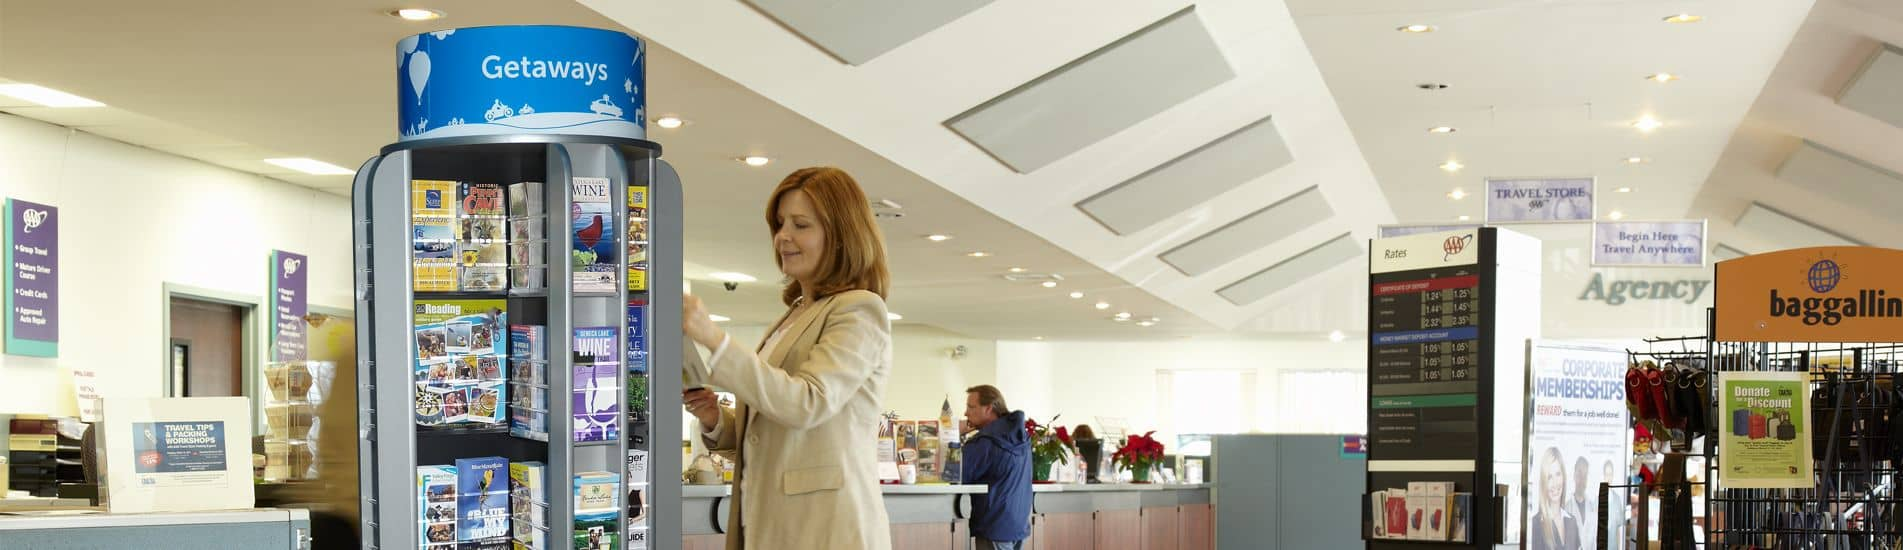 woman selecting literature from a rotating display in a travel agency lobby